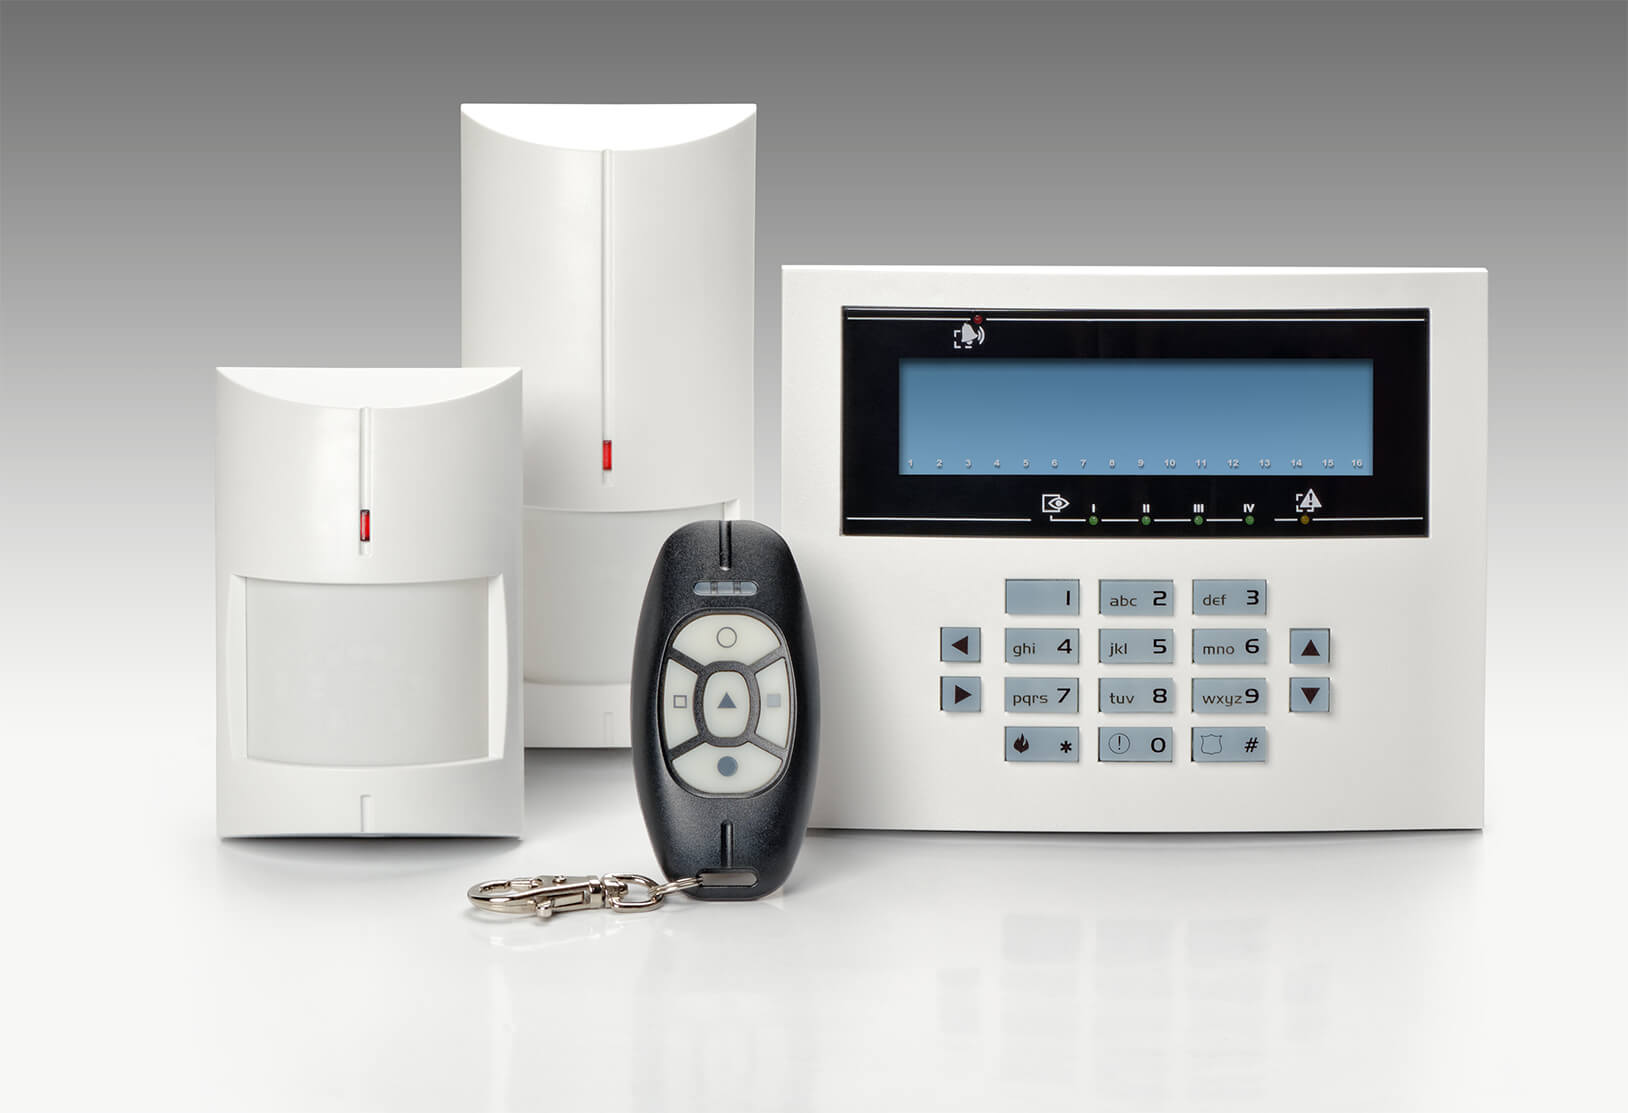 Business & Residential NSI / NACOSS Approved Burglar Alarms In Leyton E15 - Local Leyton E15 security company - Call 02078872244 - Dedicated to Safety & Security. Companies, shops and homes ..